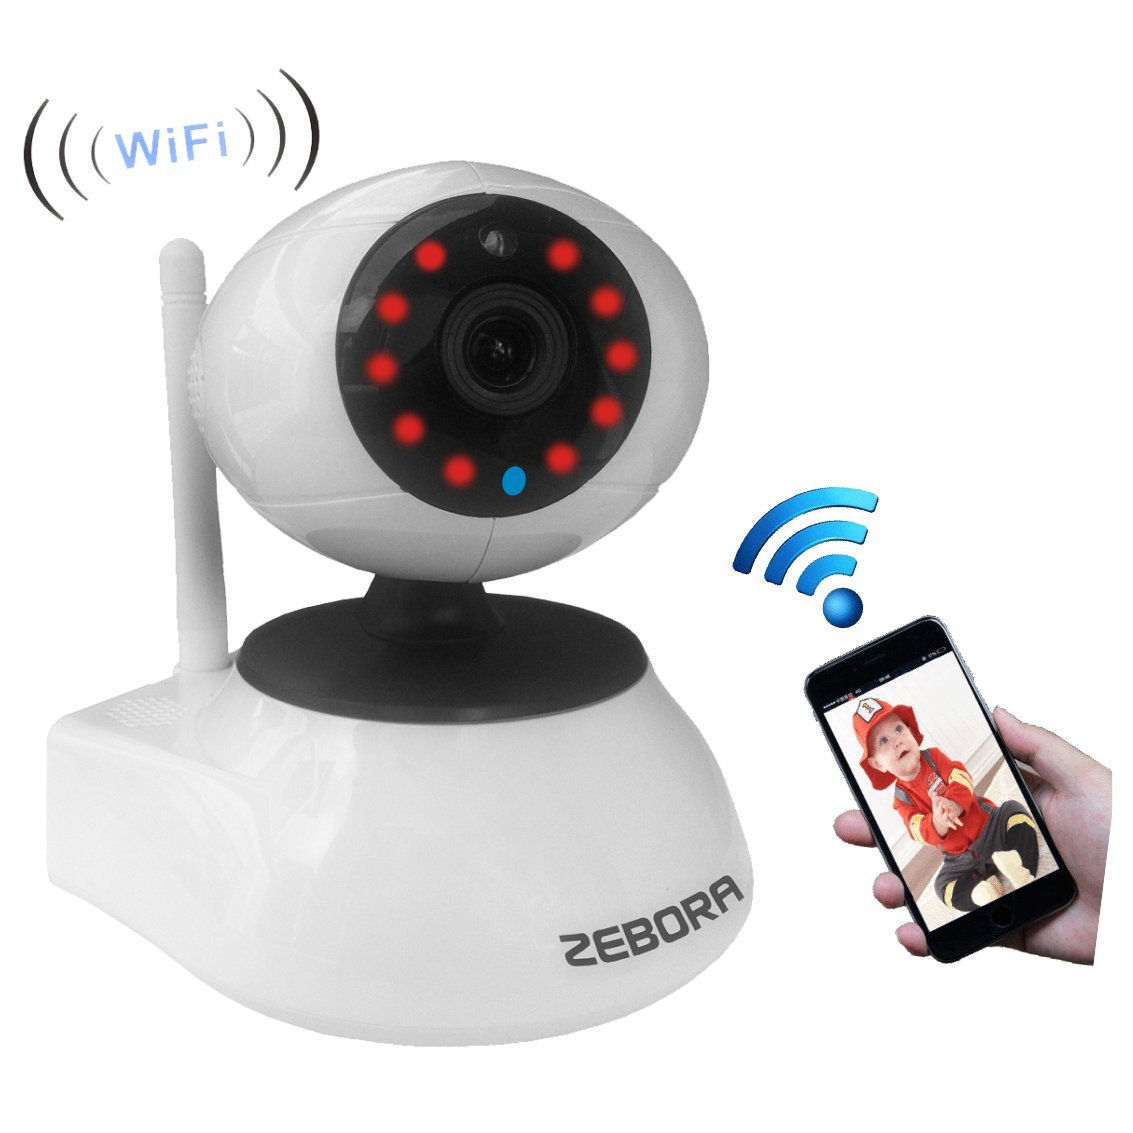 Zebora Super HD 960P Internet WiFi Wireless Network IP Security Surveillance Video Camera System, Baby and Pet Monitor with Pan and Tilt, Two Way Audio & Night Vision (white)